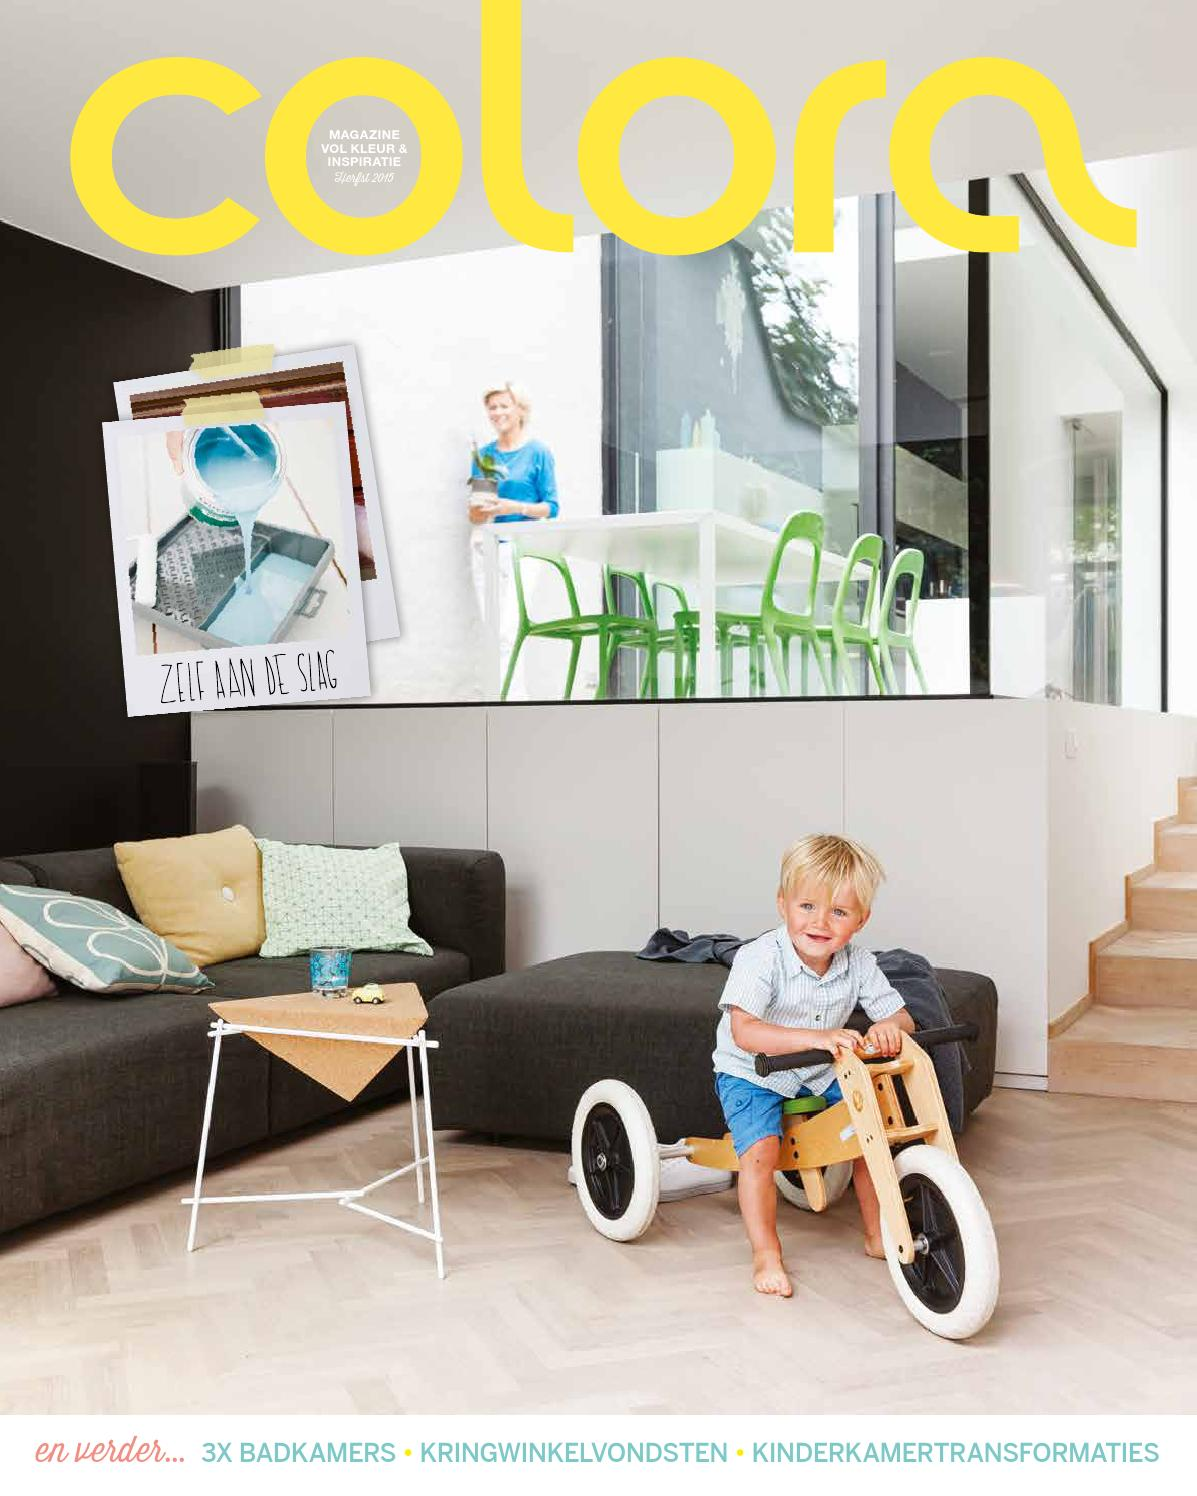 coloramagazine juni 2014 by colora de verfwinkel - issuu